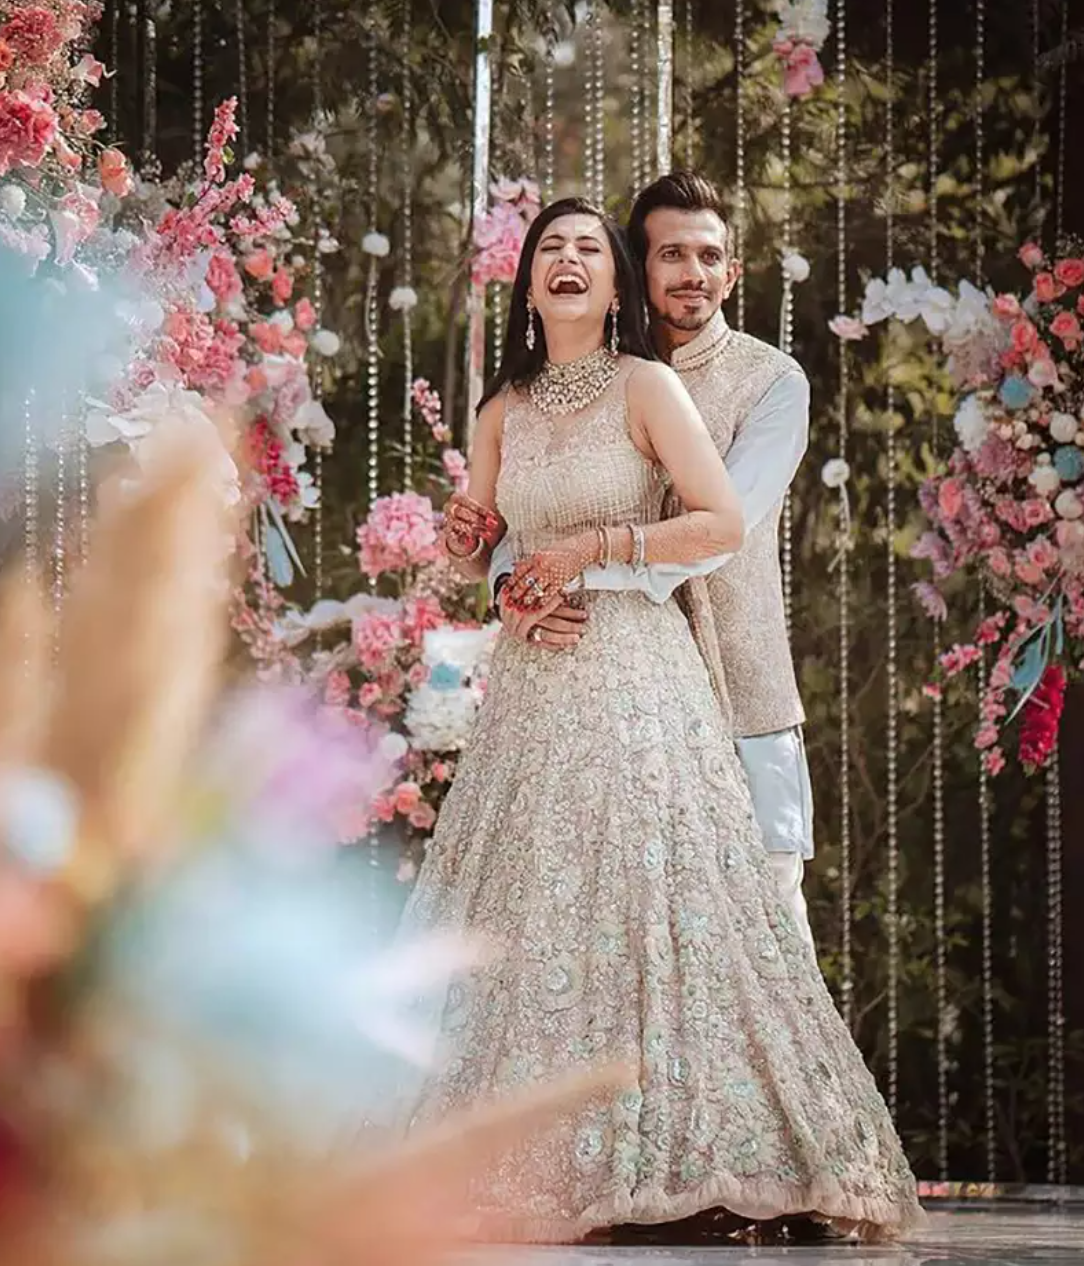 Dreamy wedding pictures of sports stars